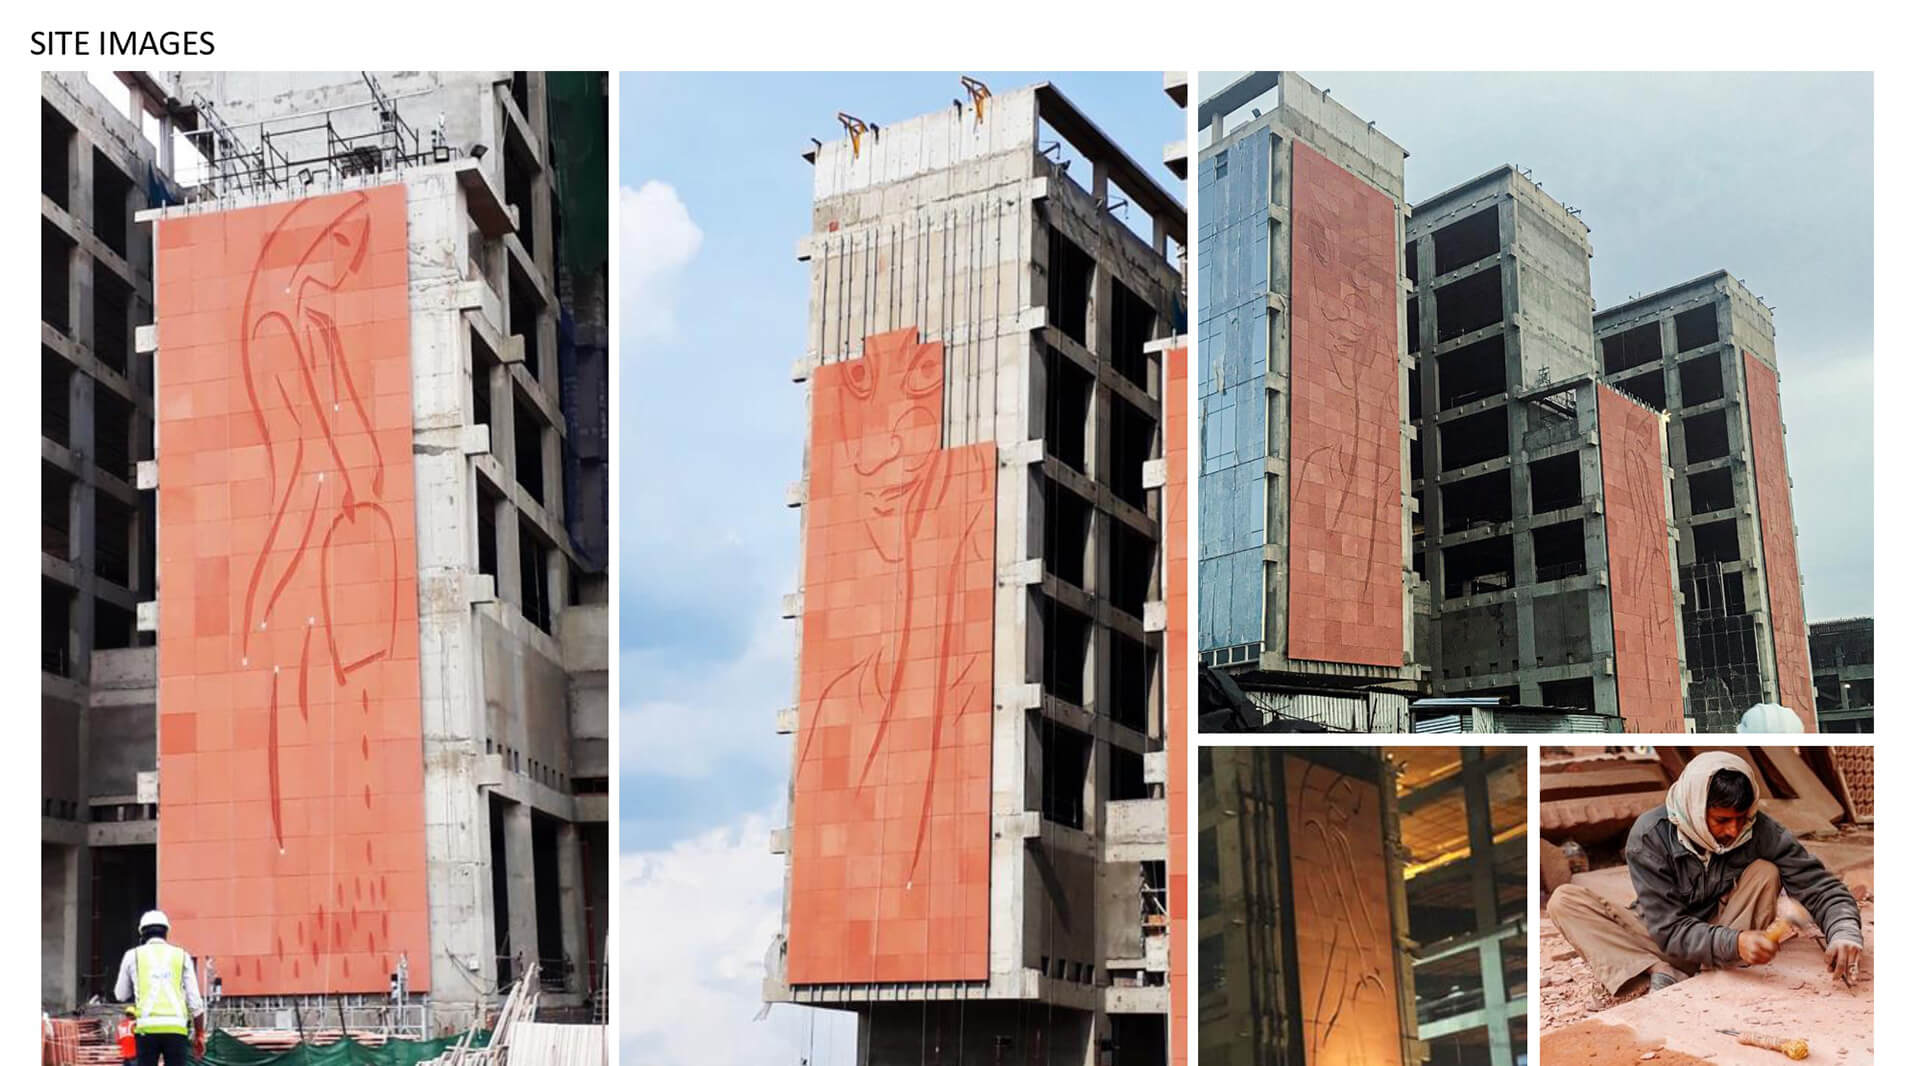 The stone façades are covered in carved murals | ITC Campus by Morphogenesis | STIRworld